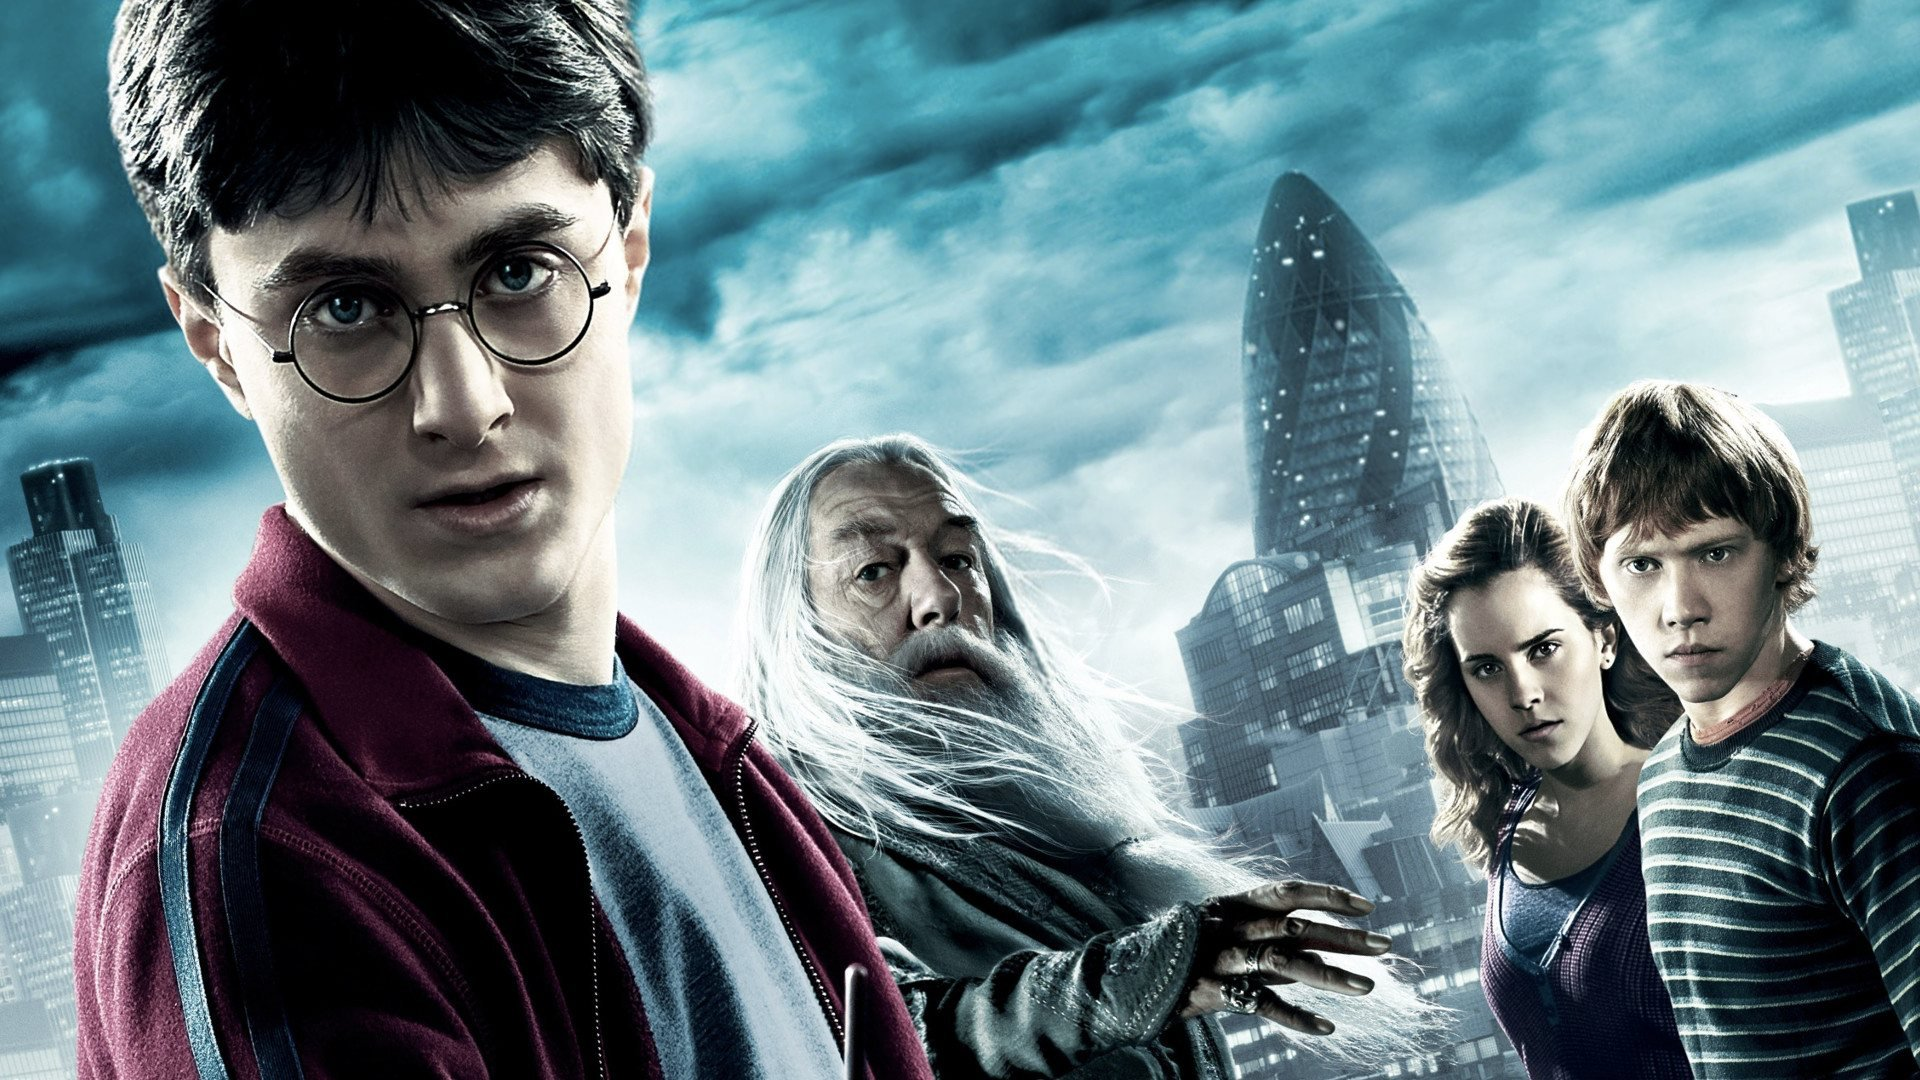 harry potter footage rpg leak